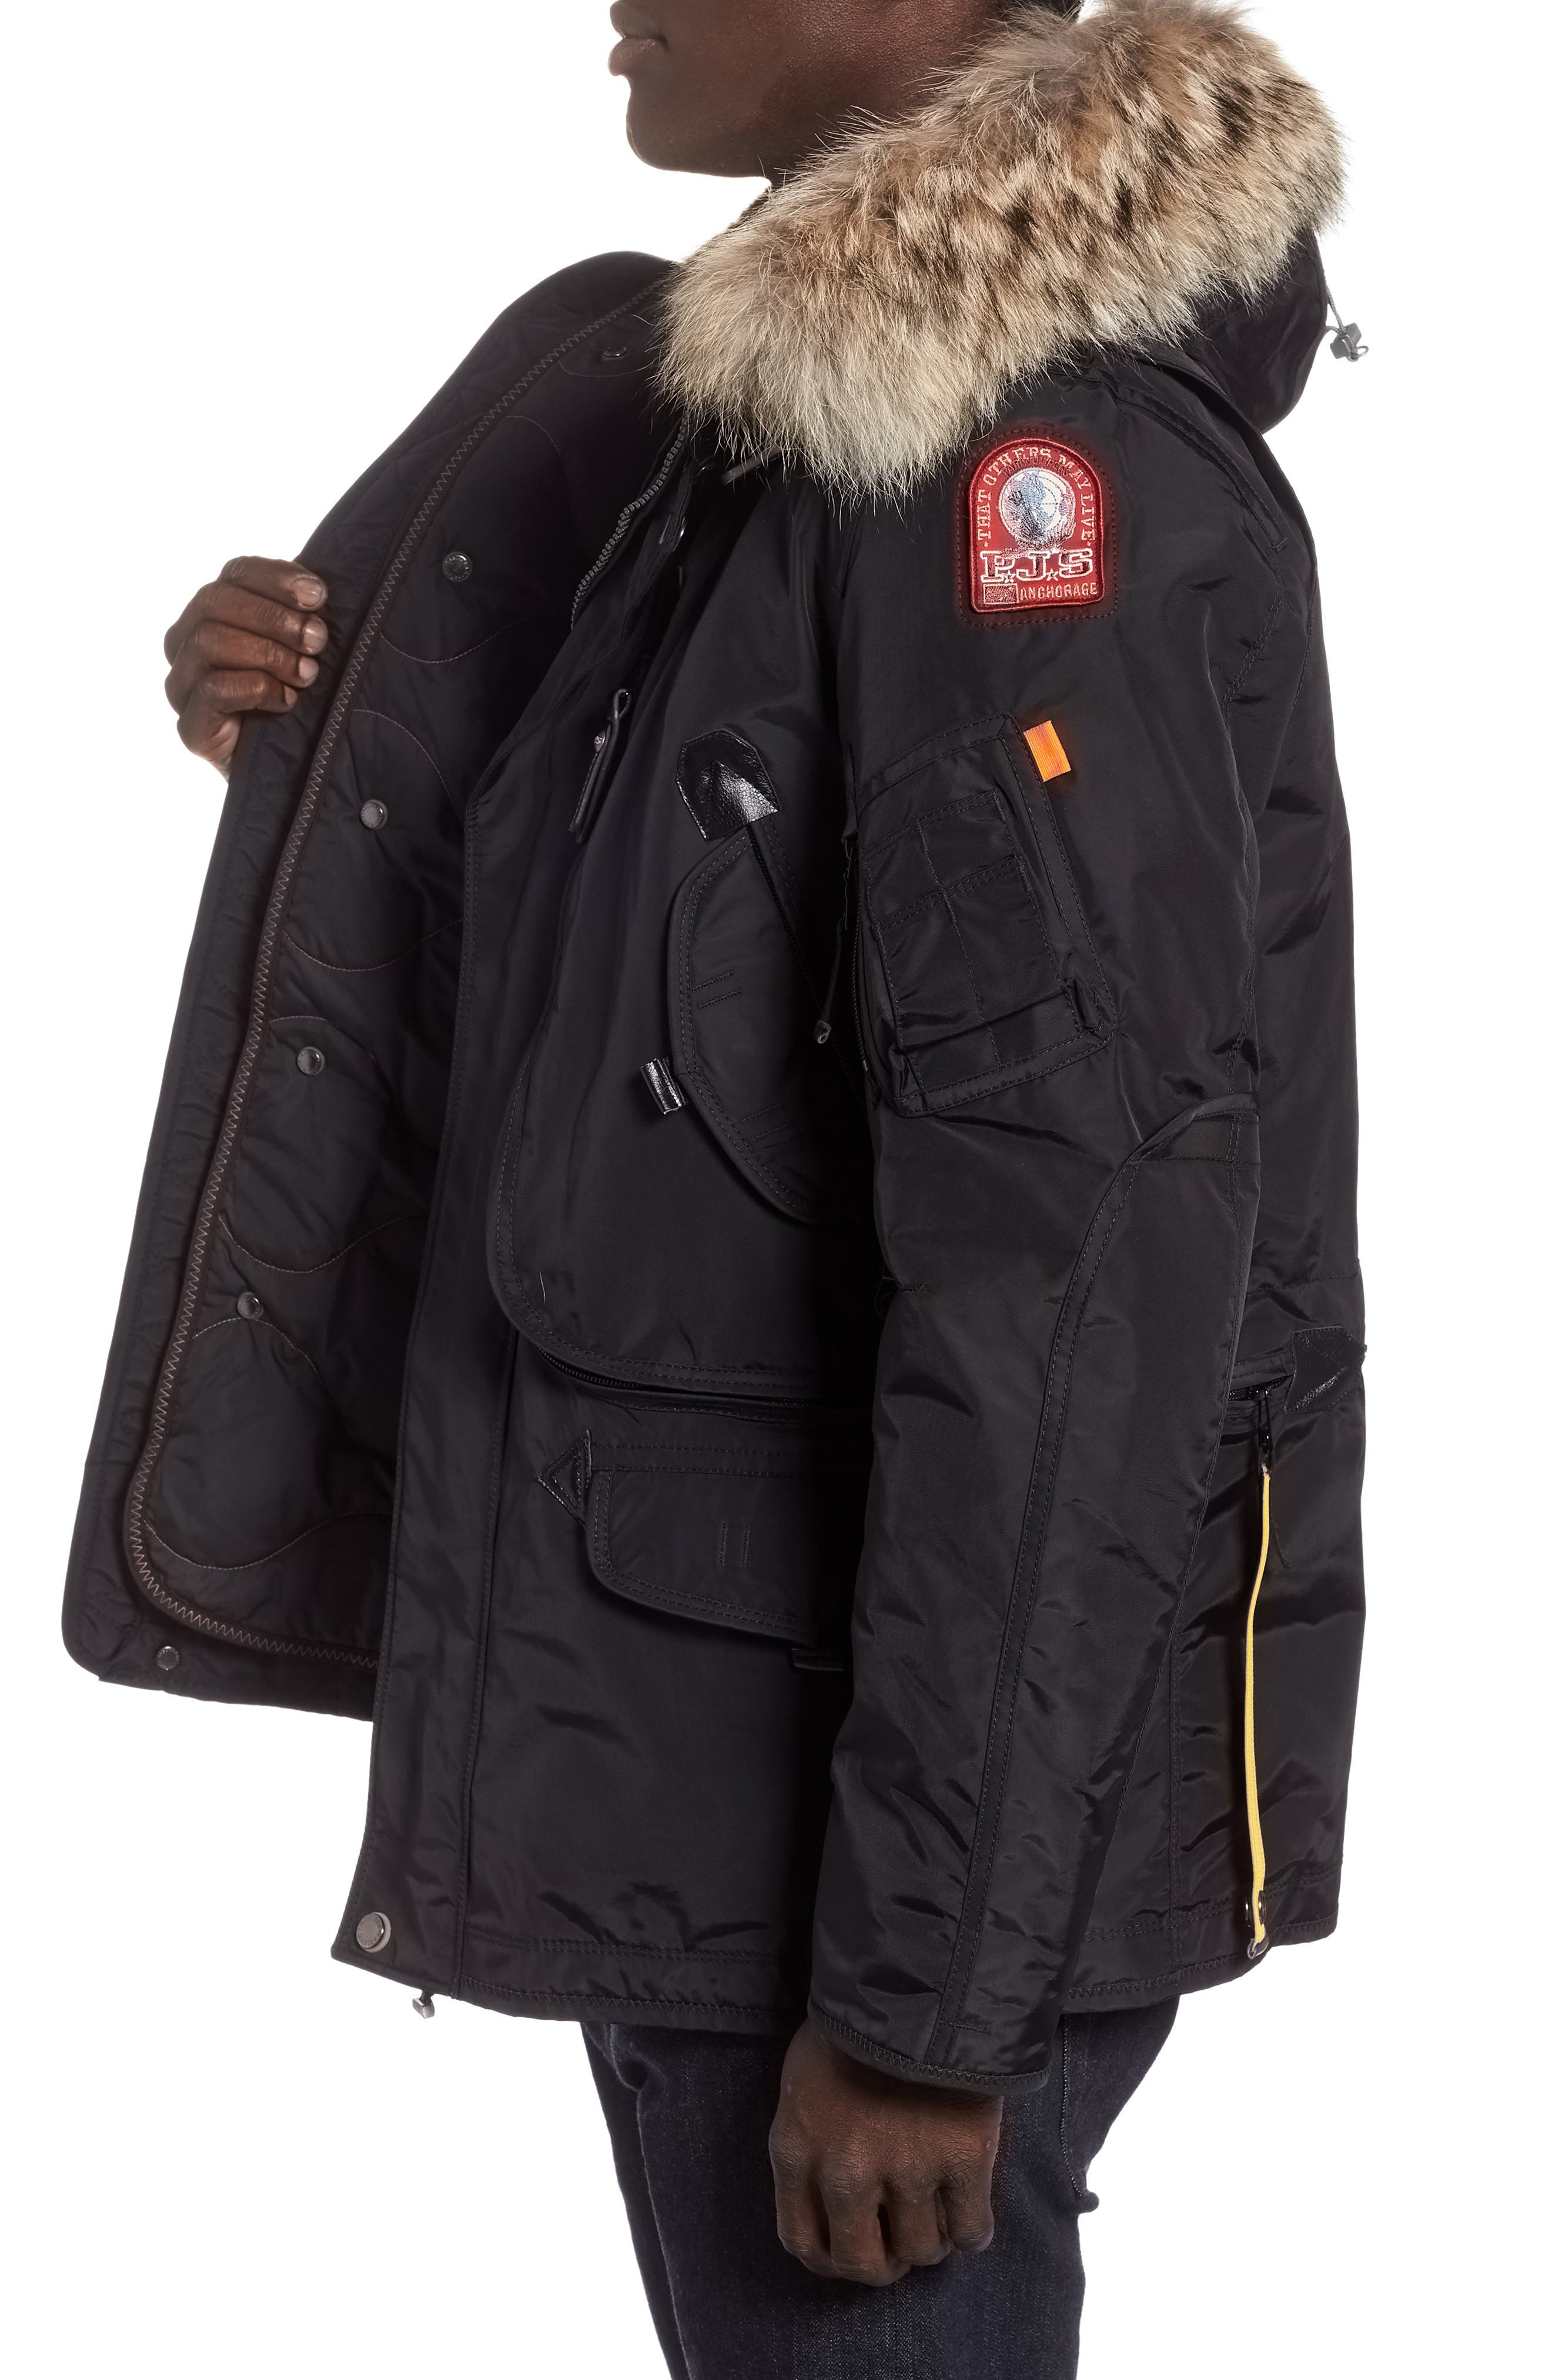 Right Hand Light 700 Fill Waterproof Power Down Jacket with Genuine Coyote Fur Trim,                             Alternate thumbnail 3, color,                             BLACK